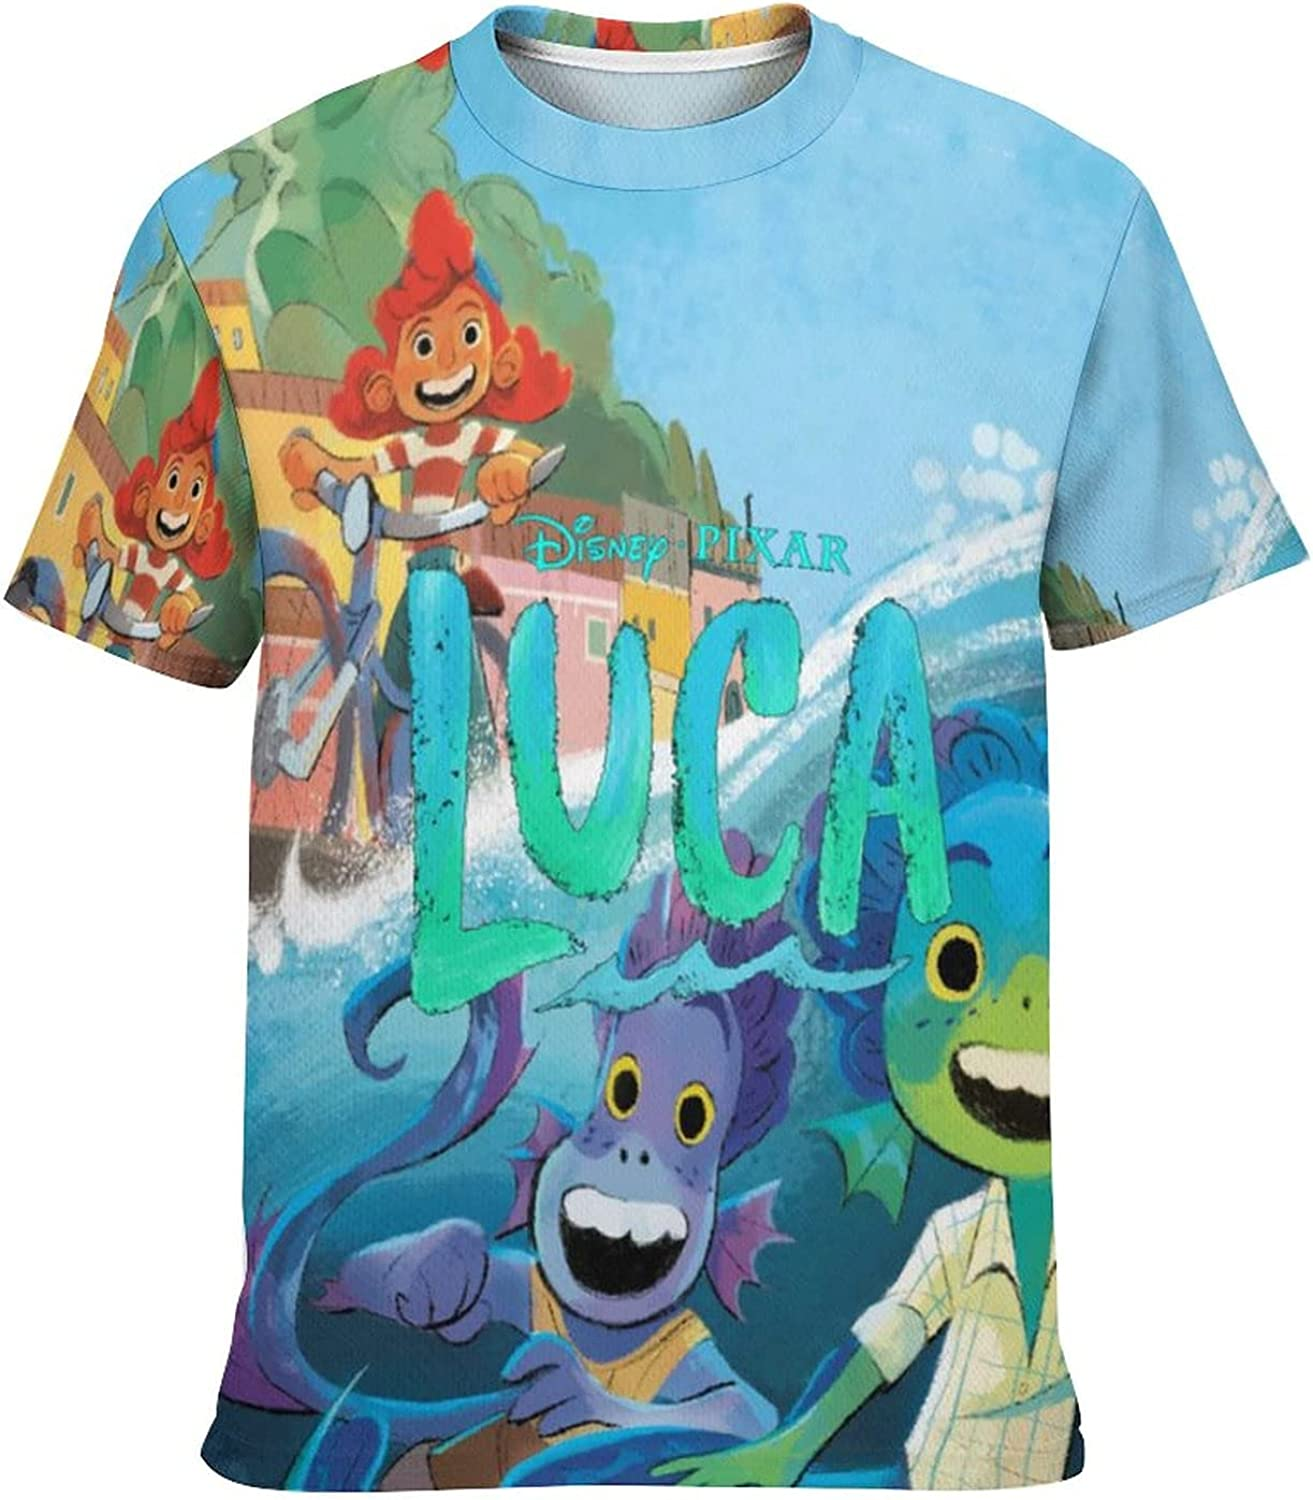 Kid's Novelty Graphic Round Neck Short Sleeve T-Shirt Cozy Trendy Tee Shirts Tops for Boys M